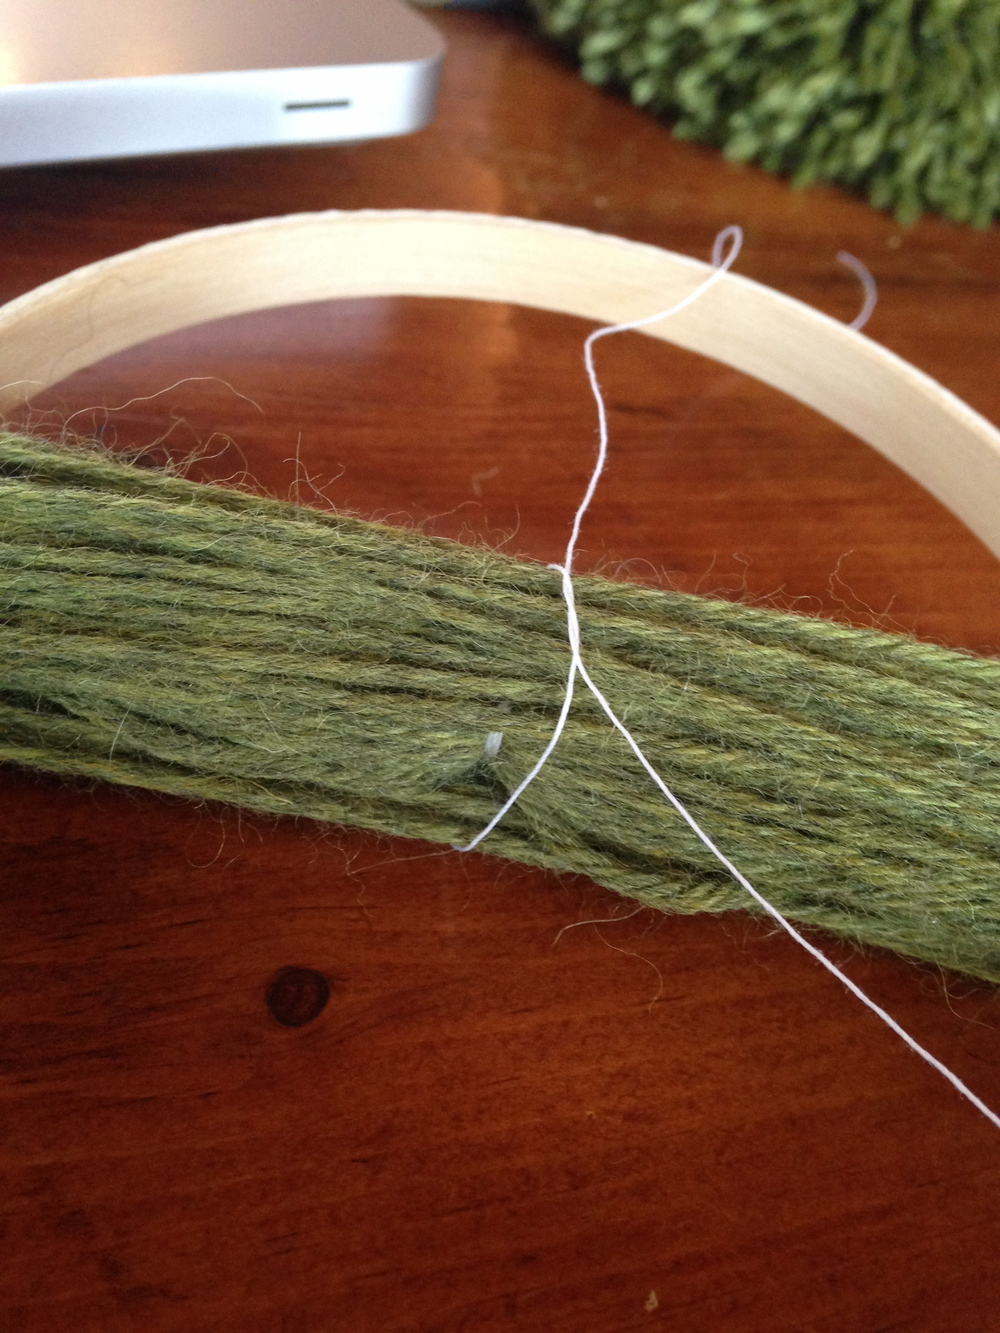 look closely at the center of the yarn and you can see where the first section of yarn has been tied tightly with heavy thread.